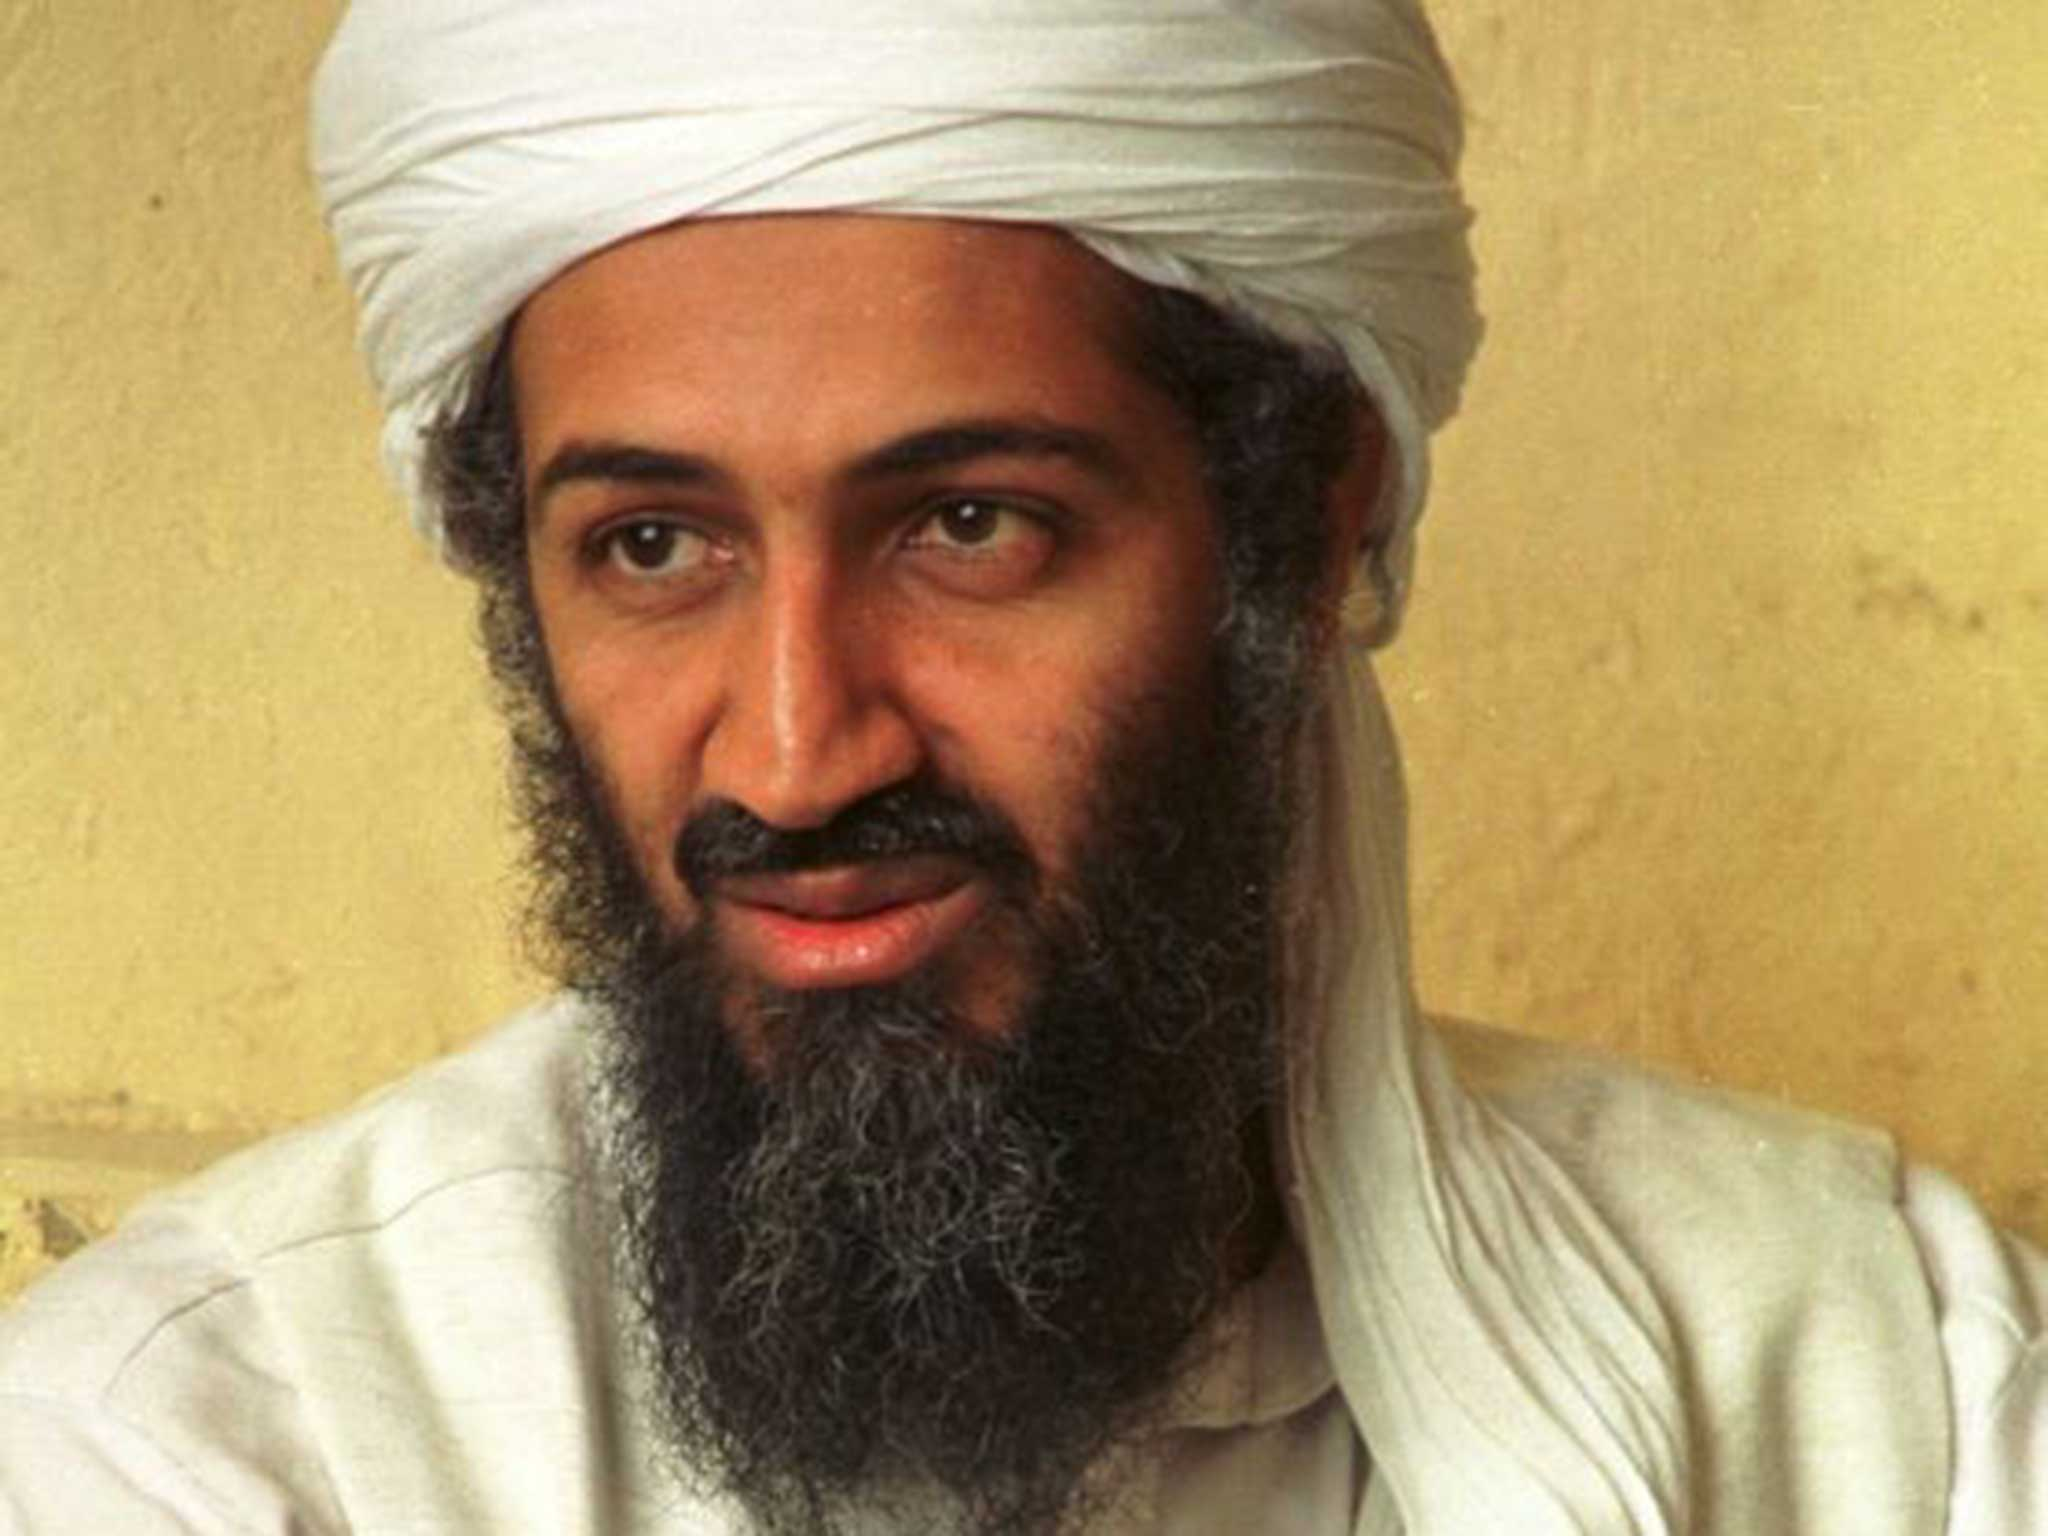 osama bin laden issued a chilling pre warning of attack plan osama bin laden issued a chilling pre warning of 9 11 attack plan al qaeda audio tapes reveal the independent